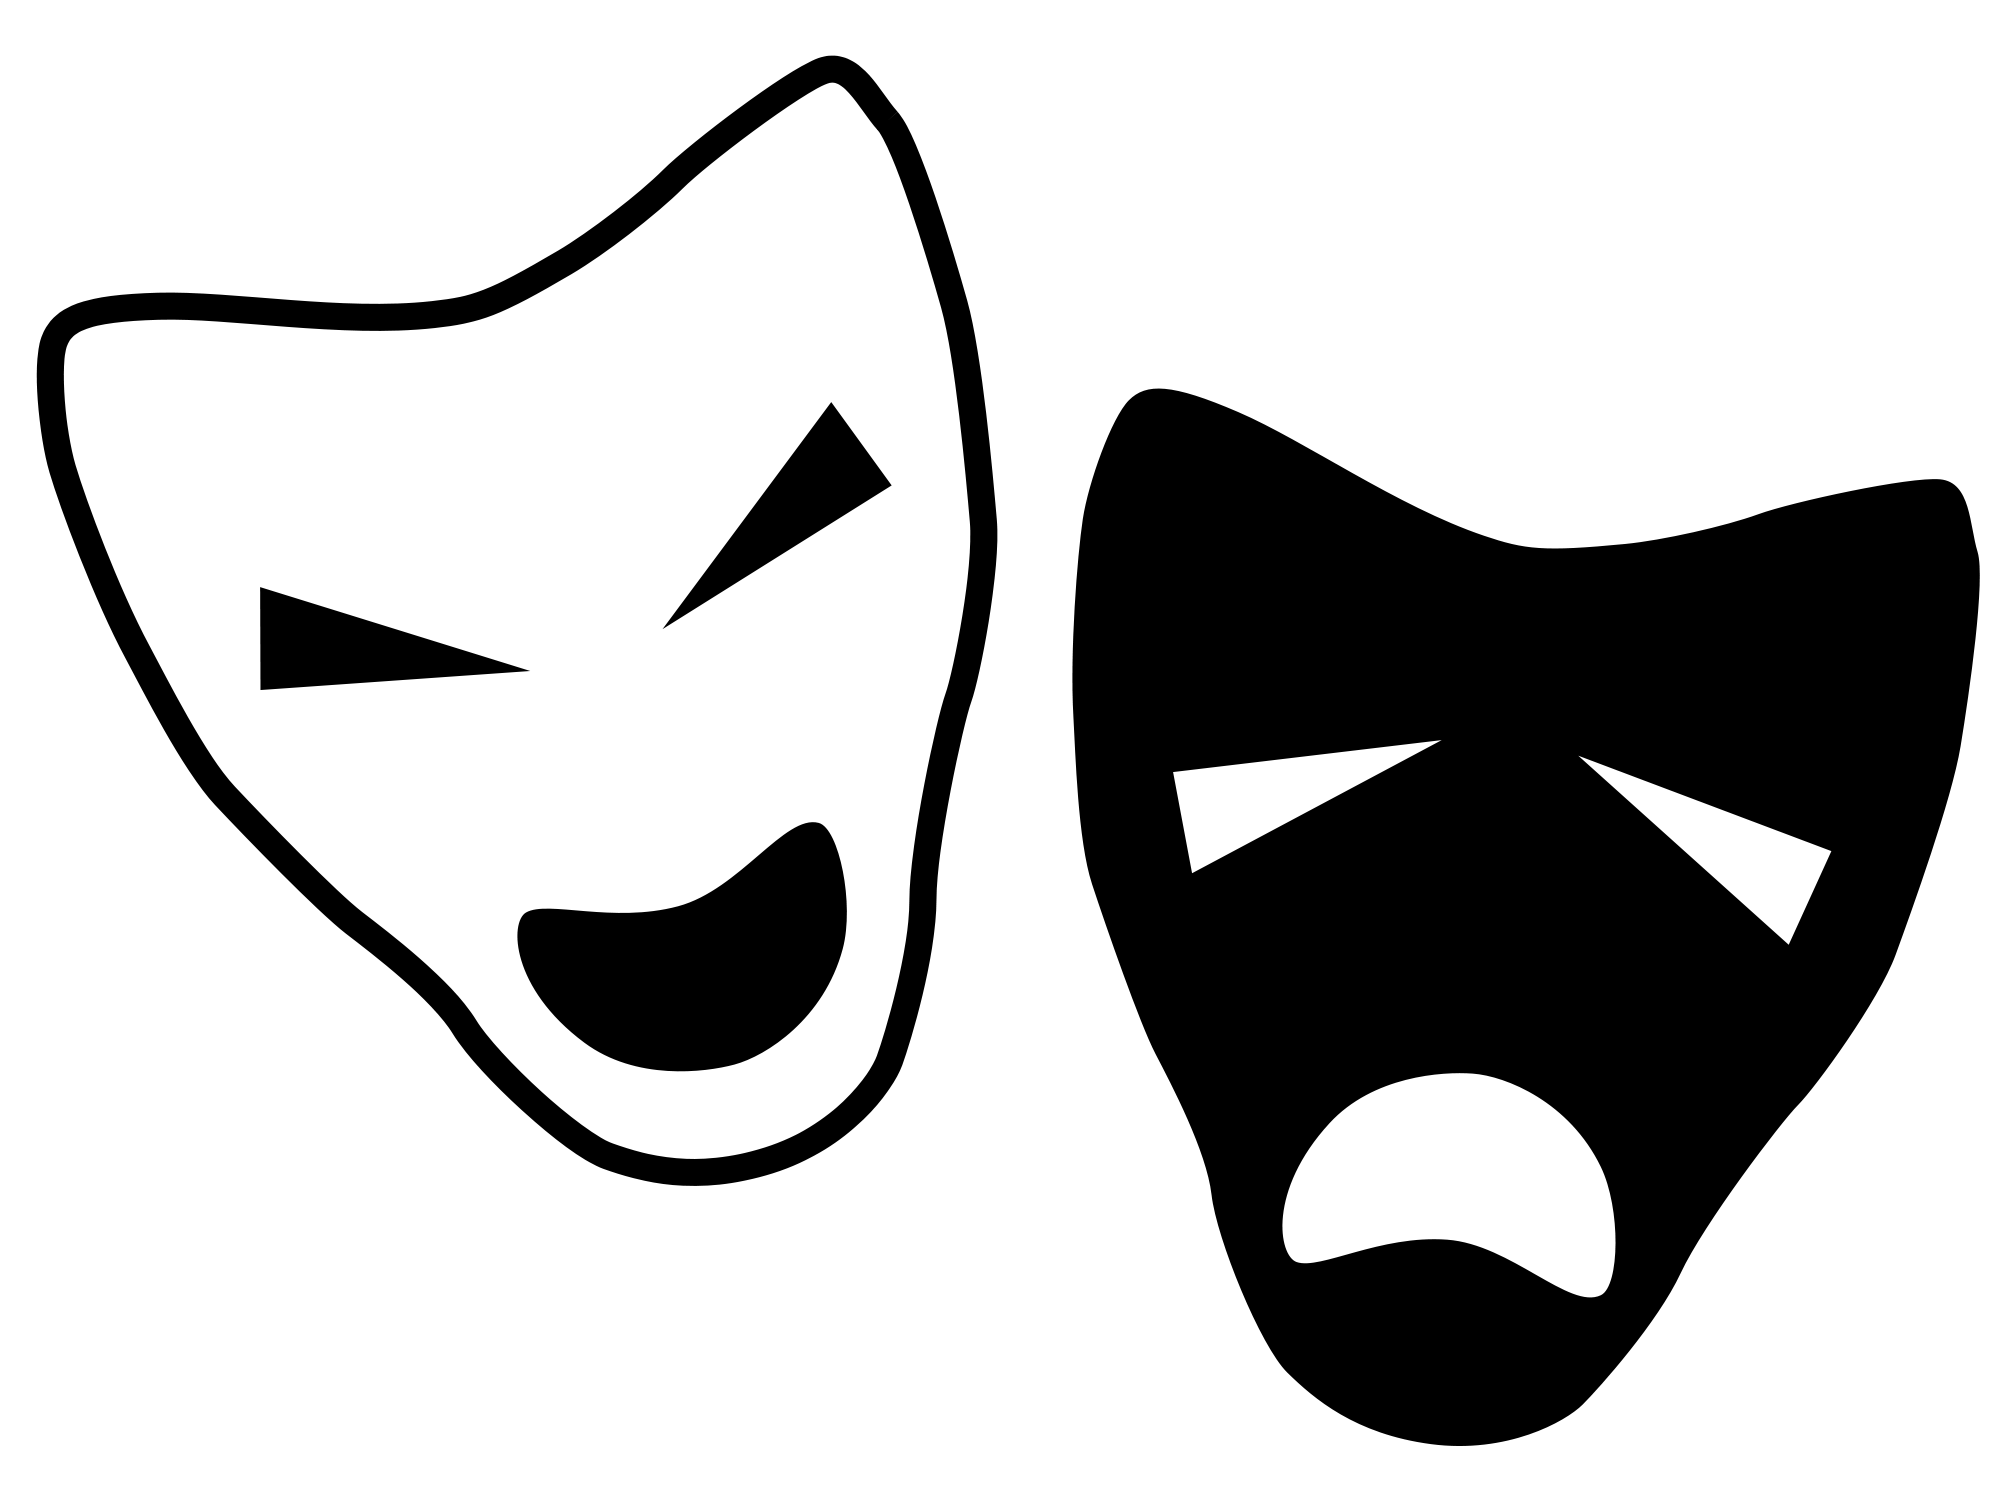 Drama mask cliparts co. Club clipart dramatic